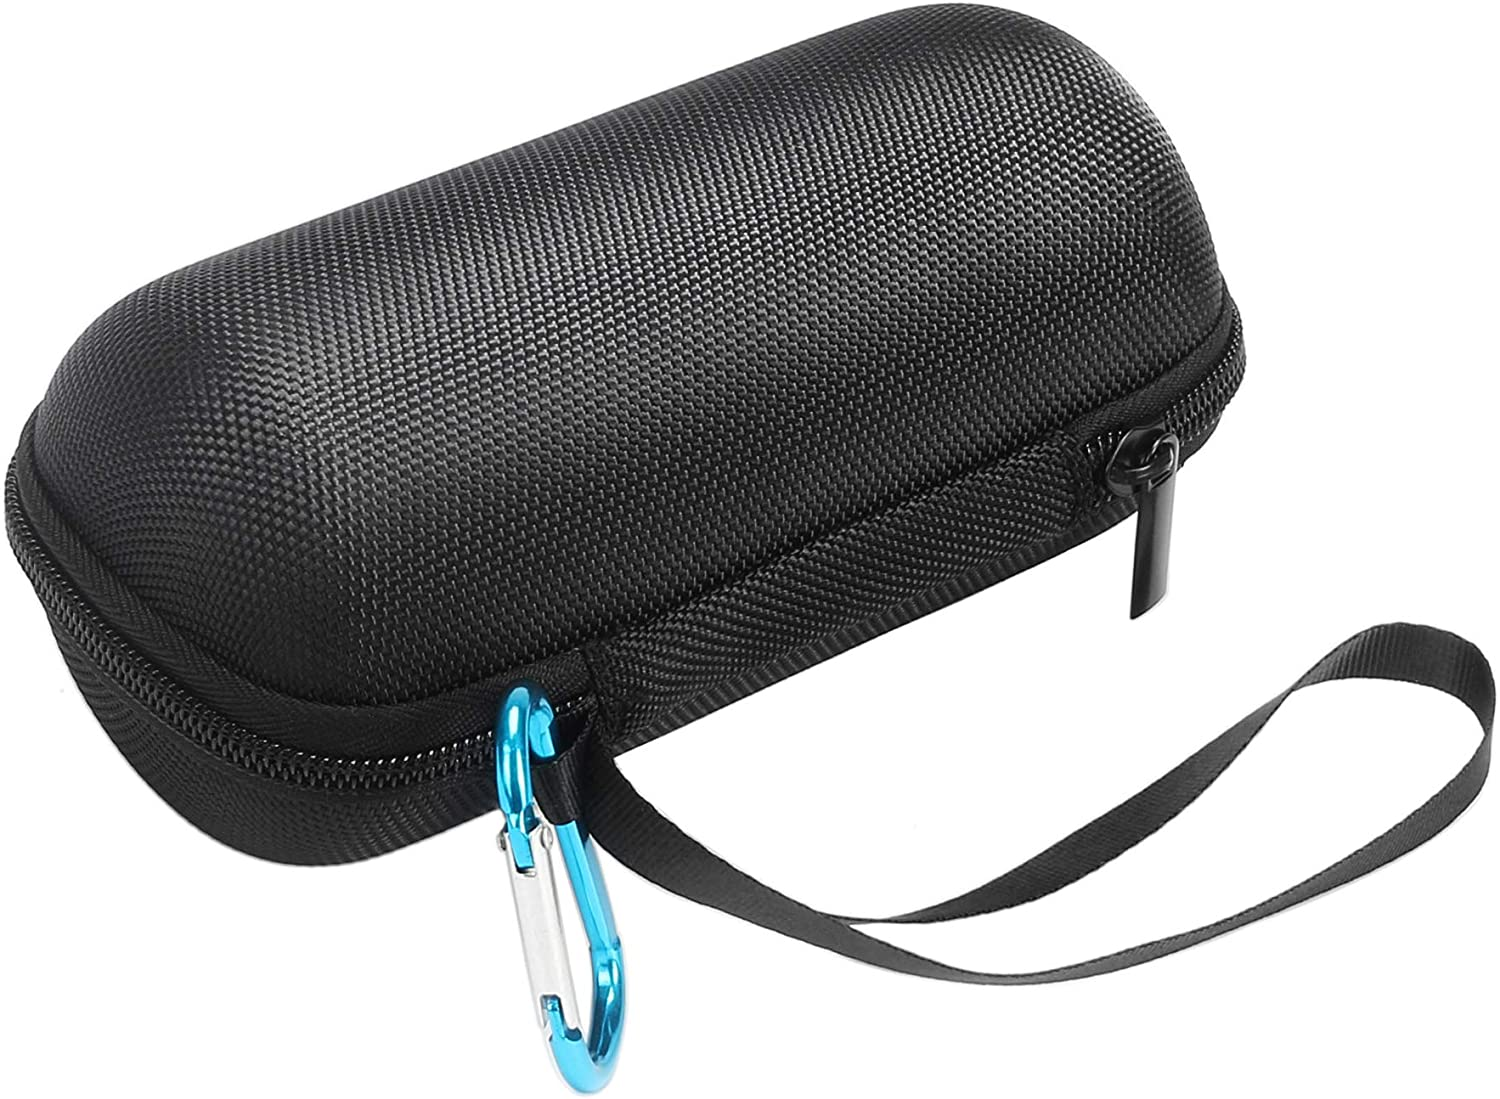 Gray Zaracle Travel Storage Bag Protective Pouch Bag Carry case for Sony SRS-XB12 Extra Bass Portable Bluetooth Speaker